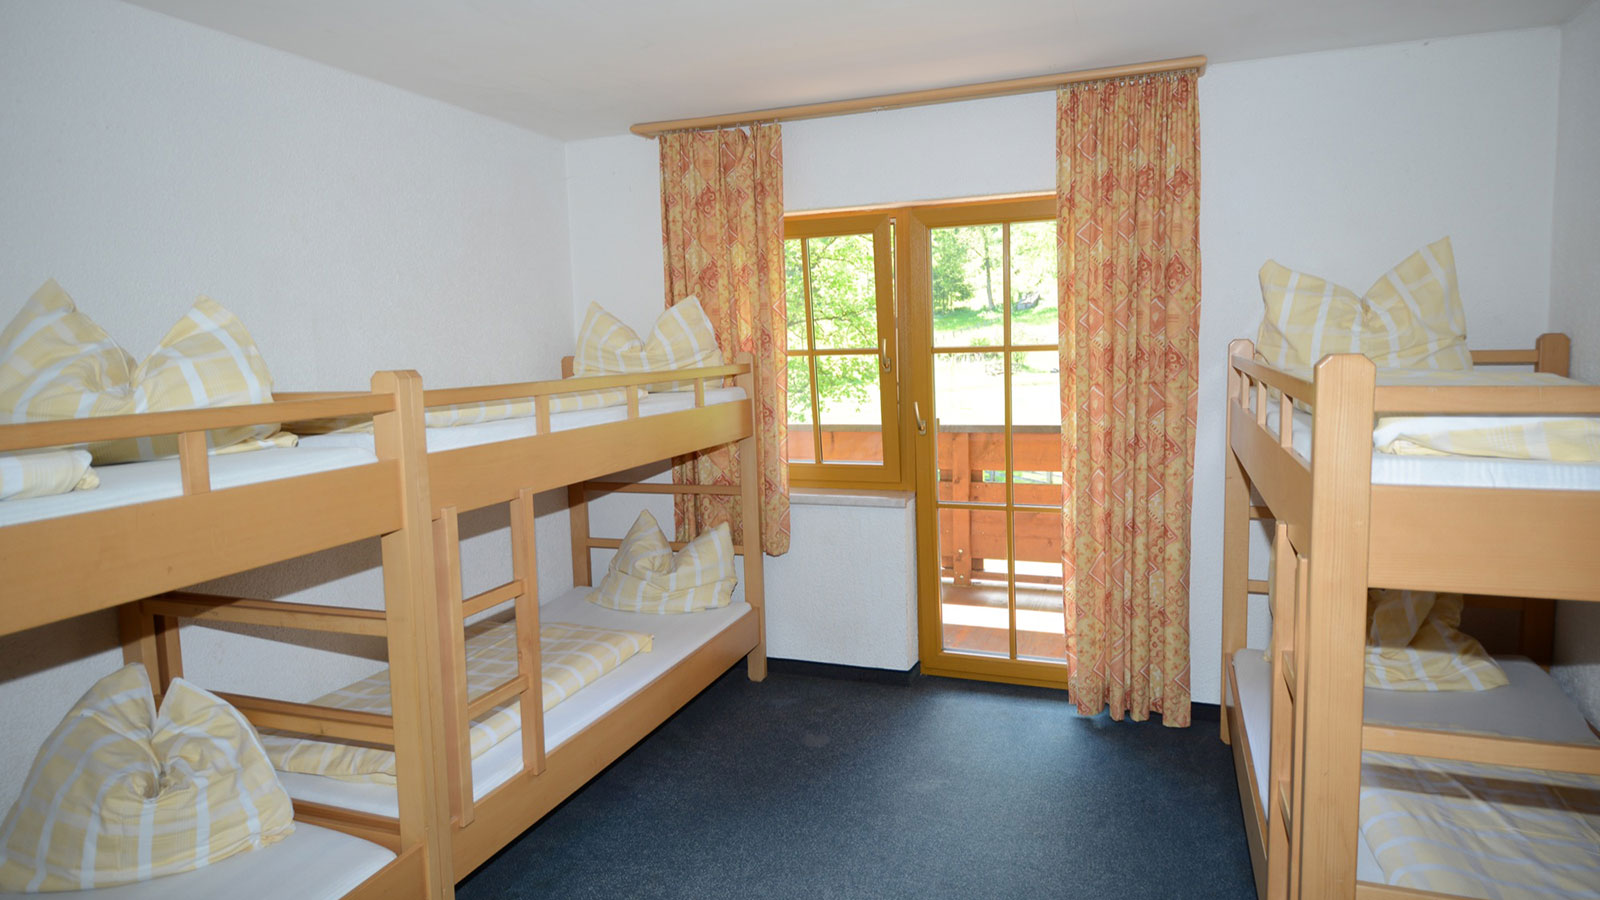 Jugendhotel Schlosshof School Ski Trip Accommodation